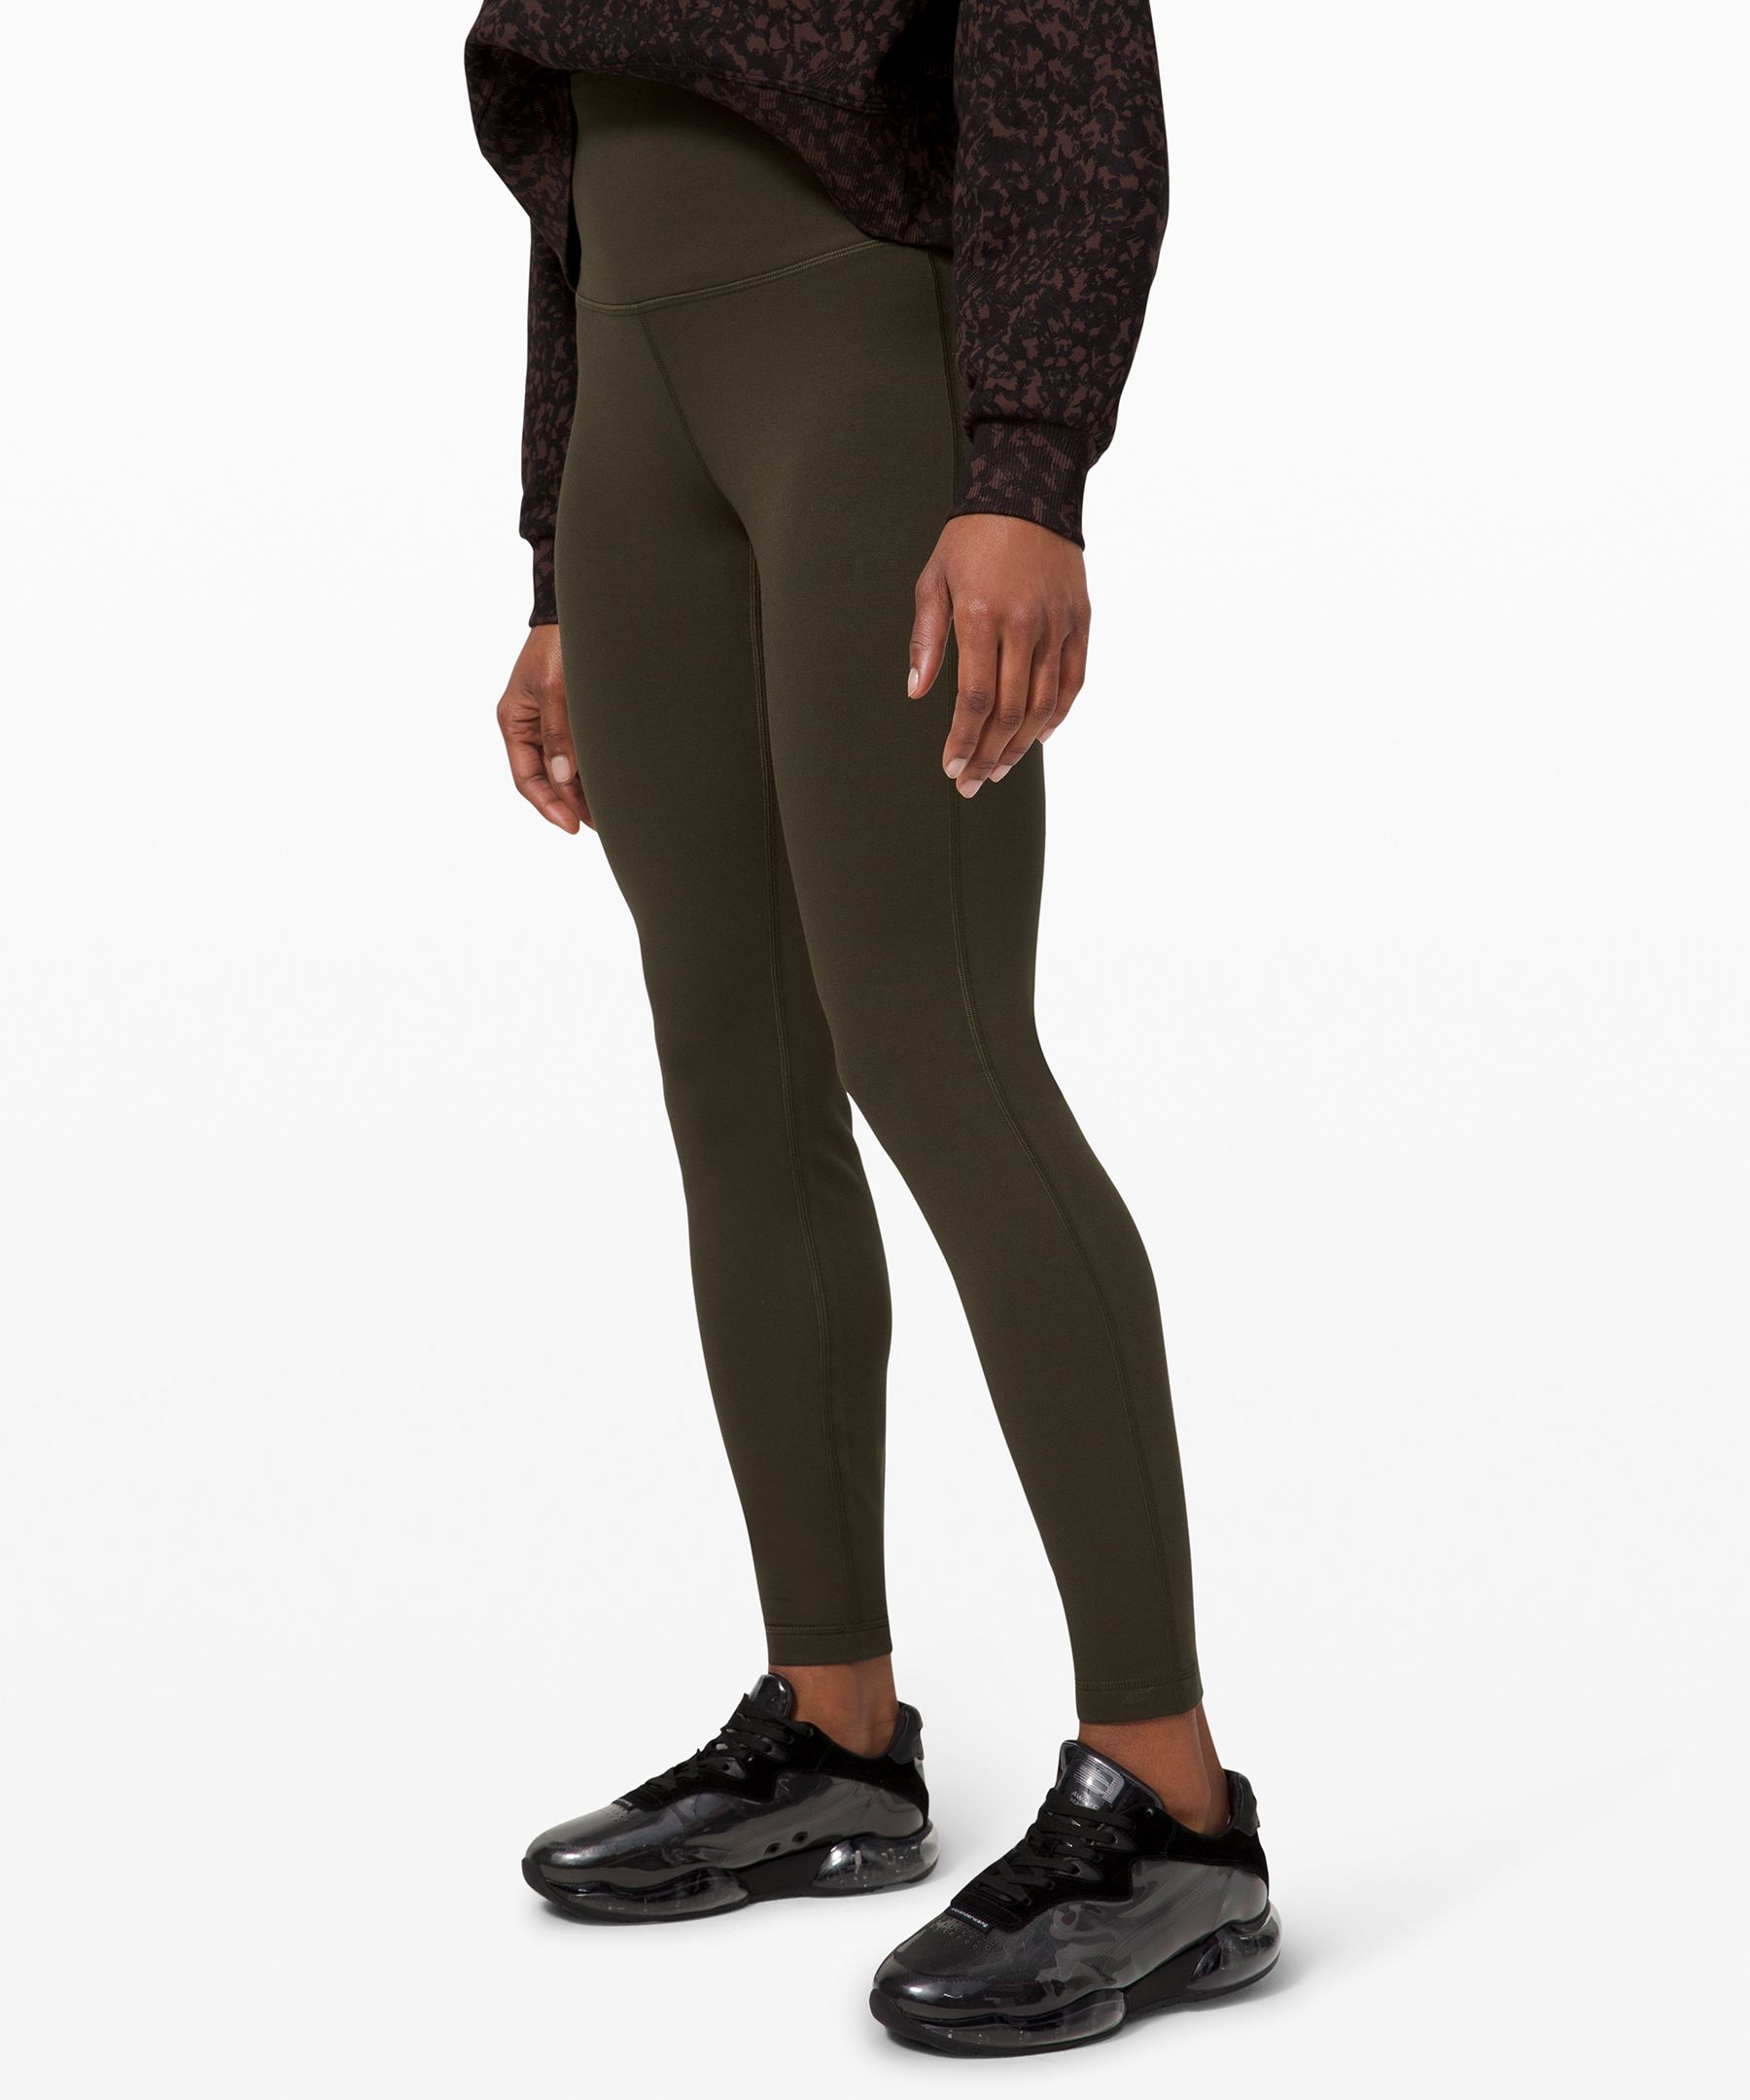 Wunder Lounge Super High-Rise Tight 28